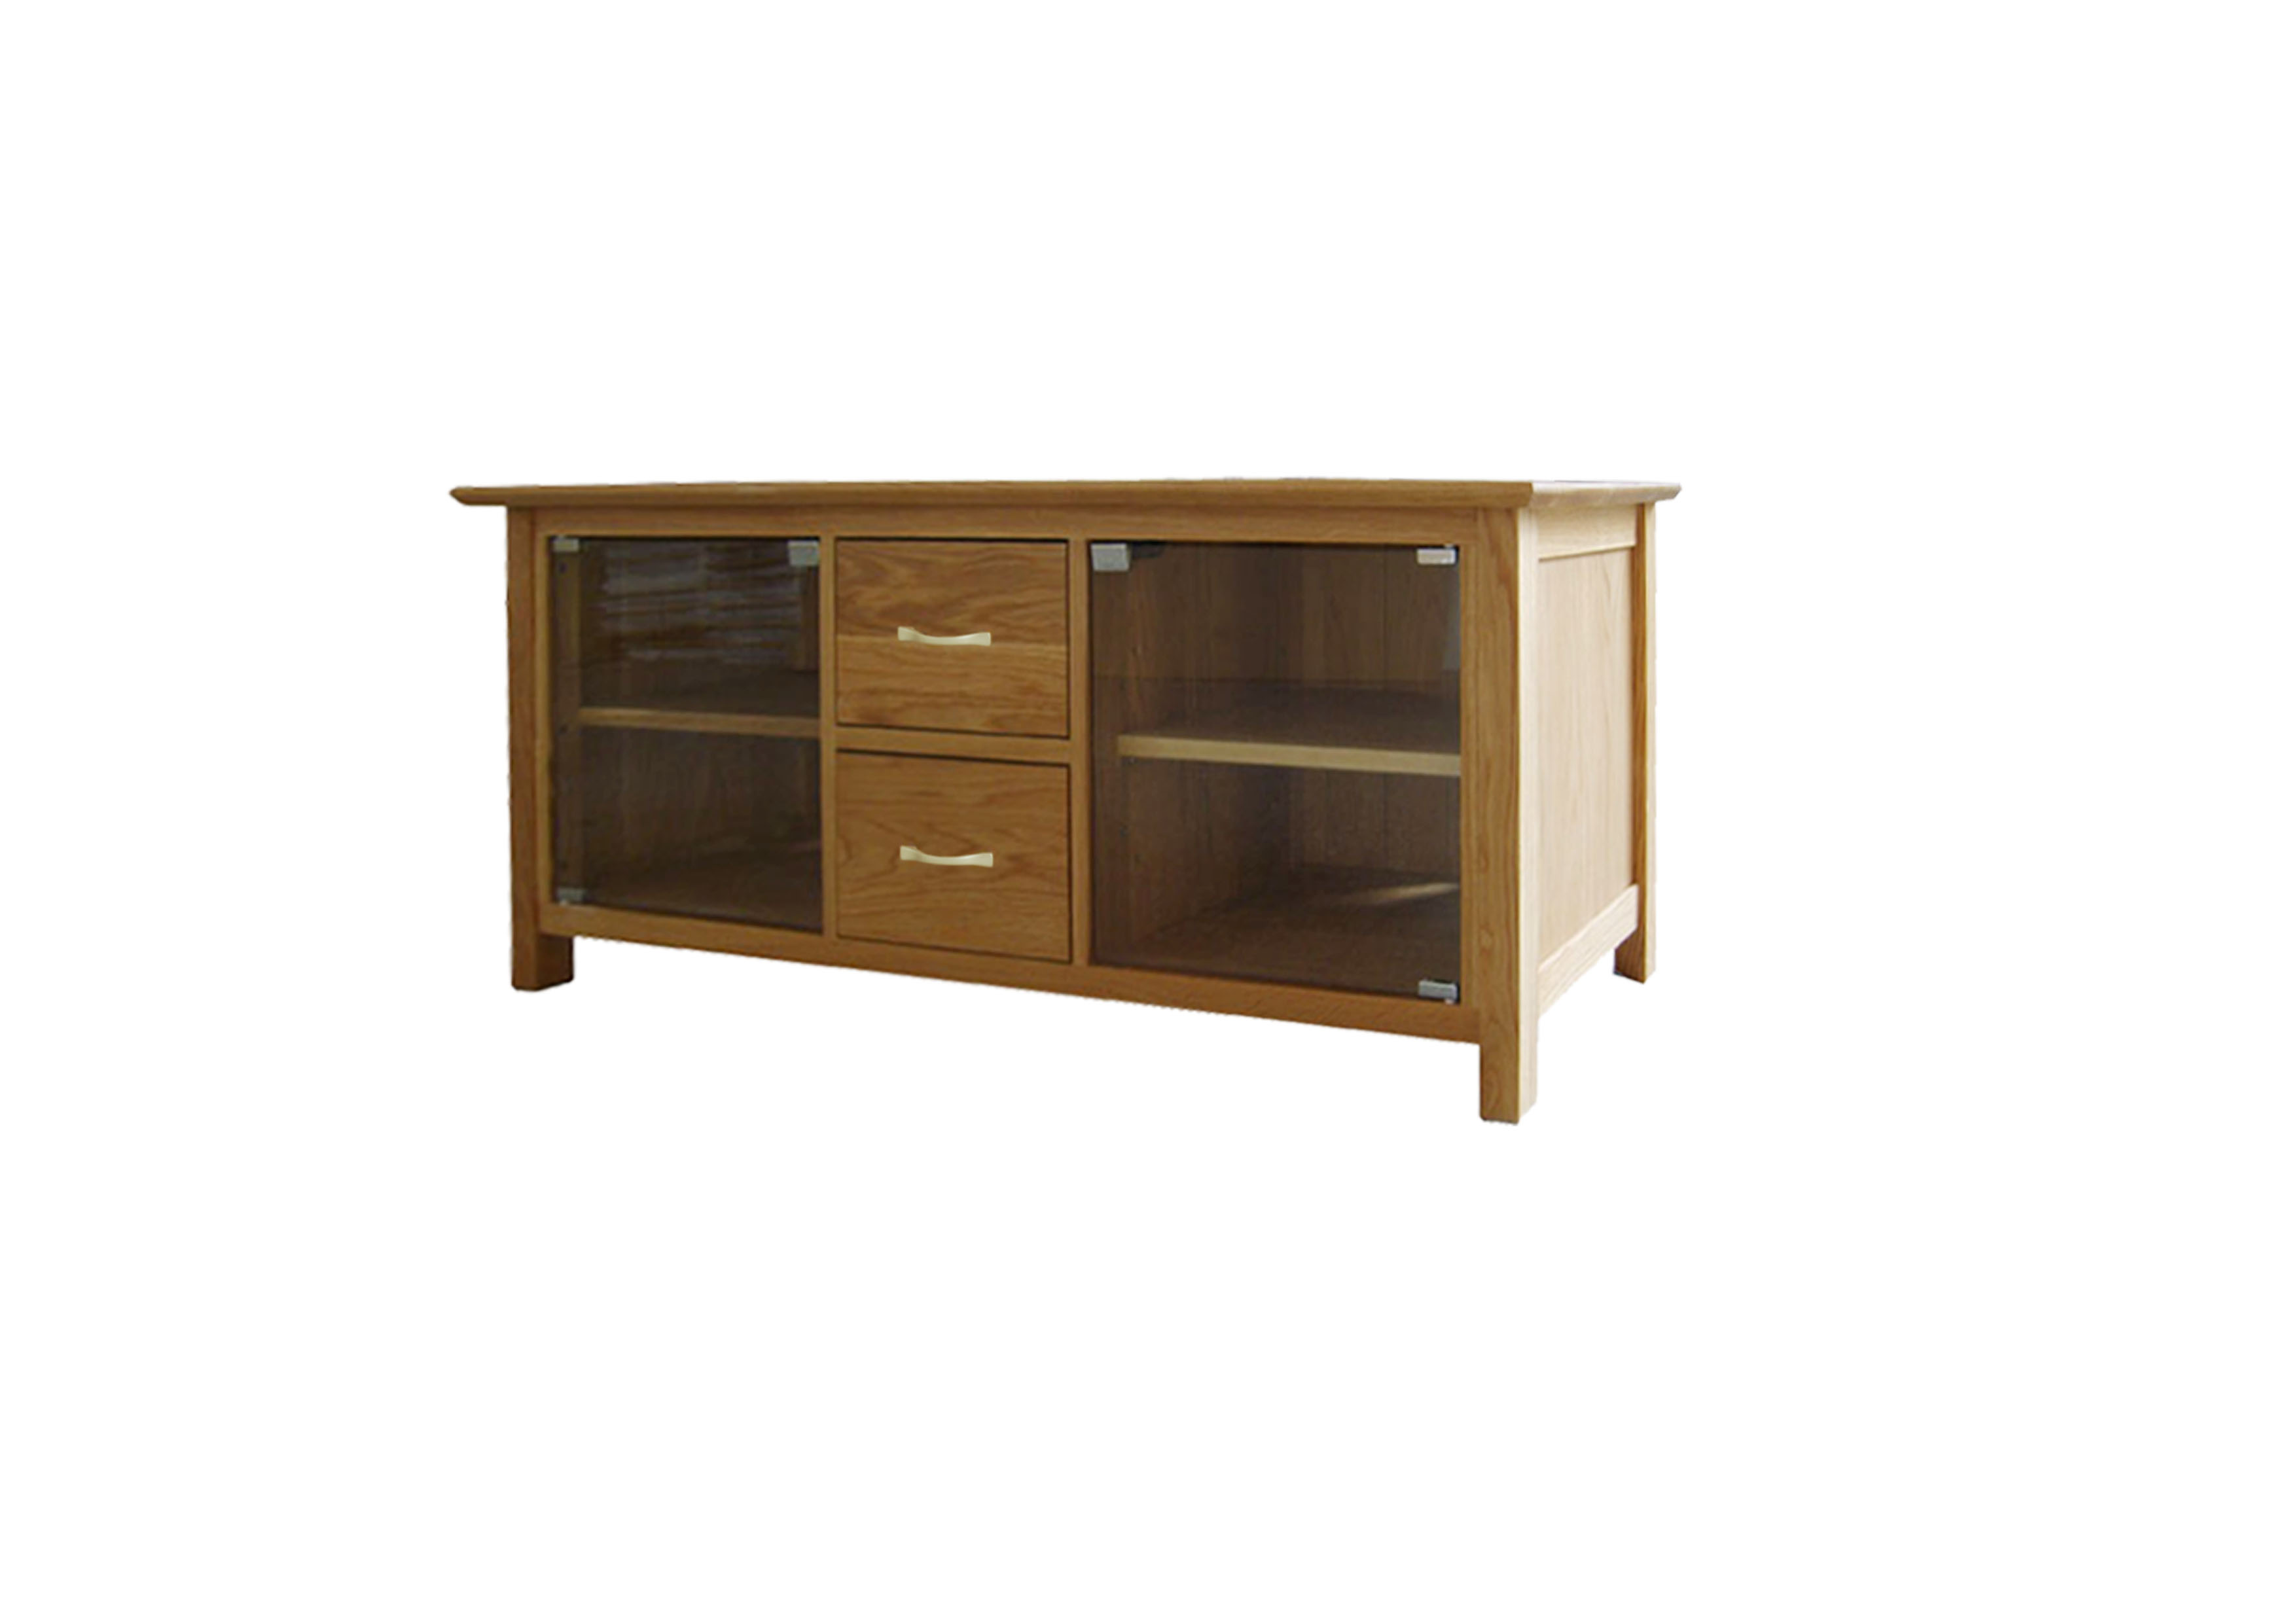 Easyfurn Tv Meubel.Large Tv Unit With Glass Doors Choice Furniture And Carpets